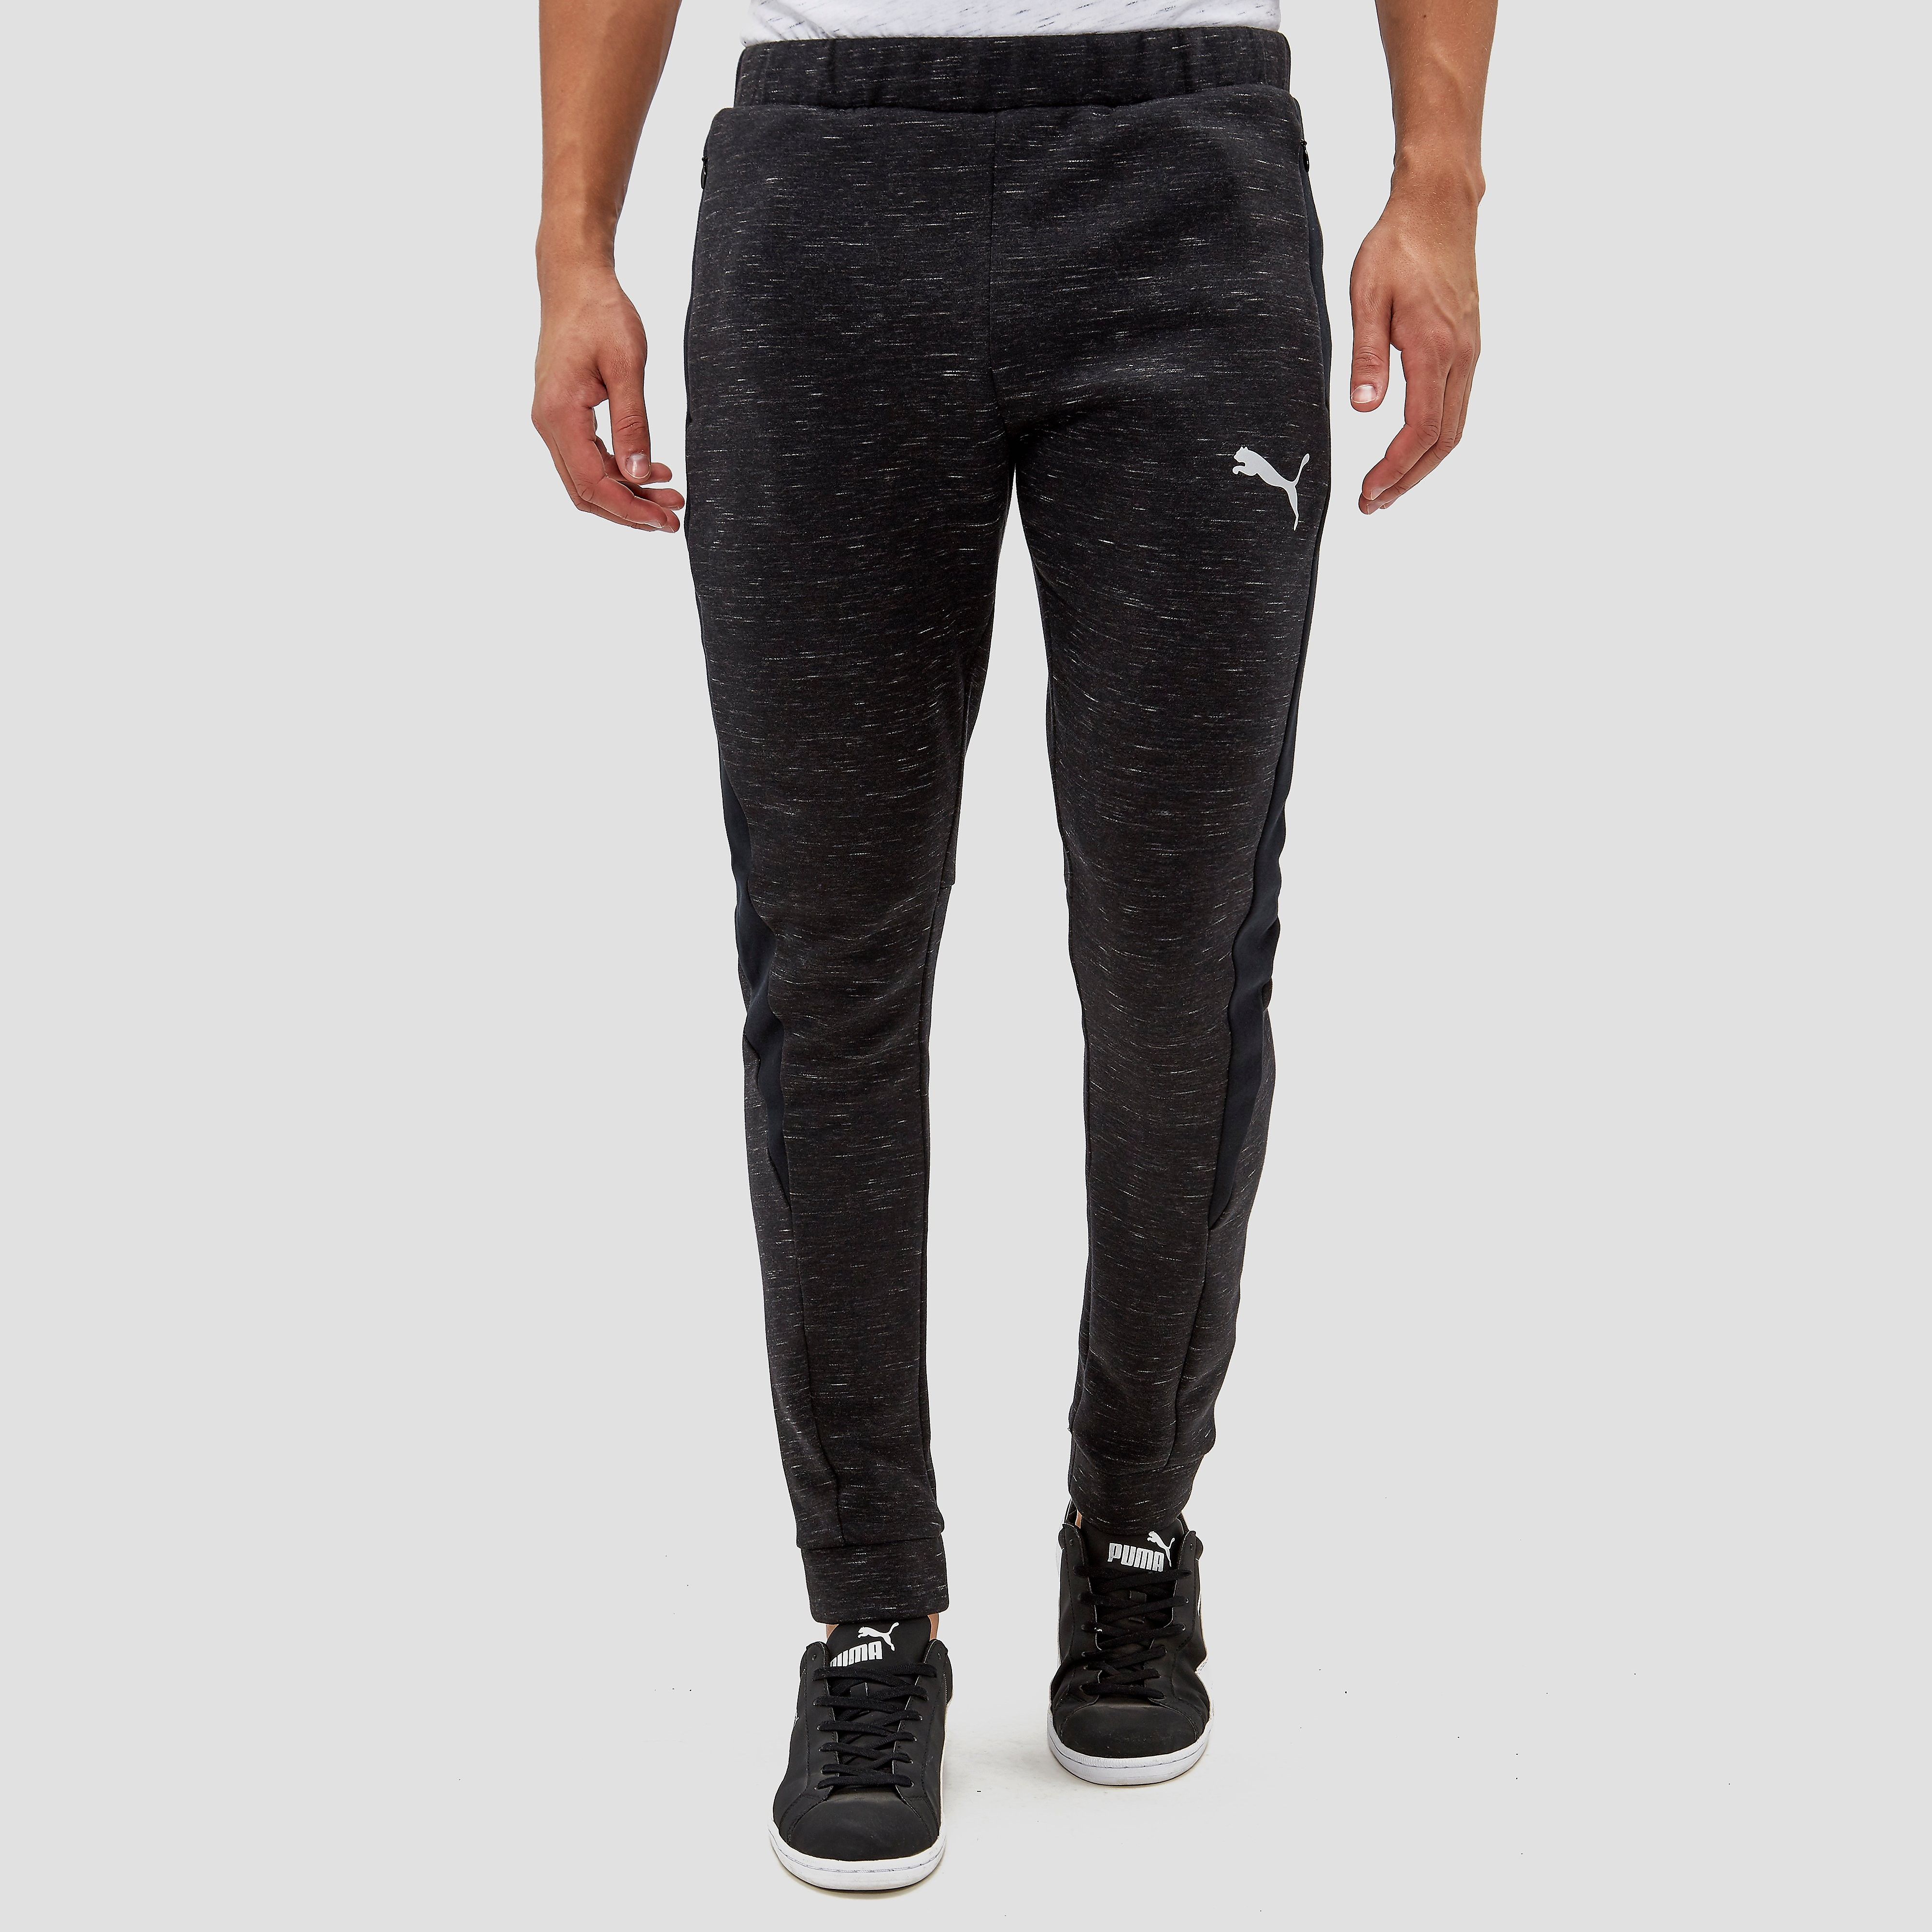 PUMA ACTIVE EVOSTRIPE SPACEKNIT JOGGINGBROEK HEREN